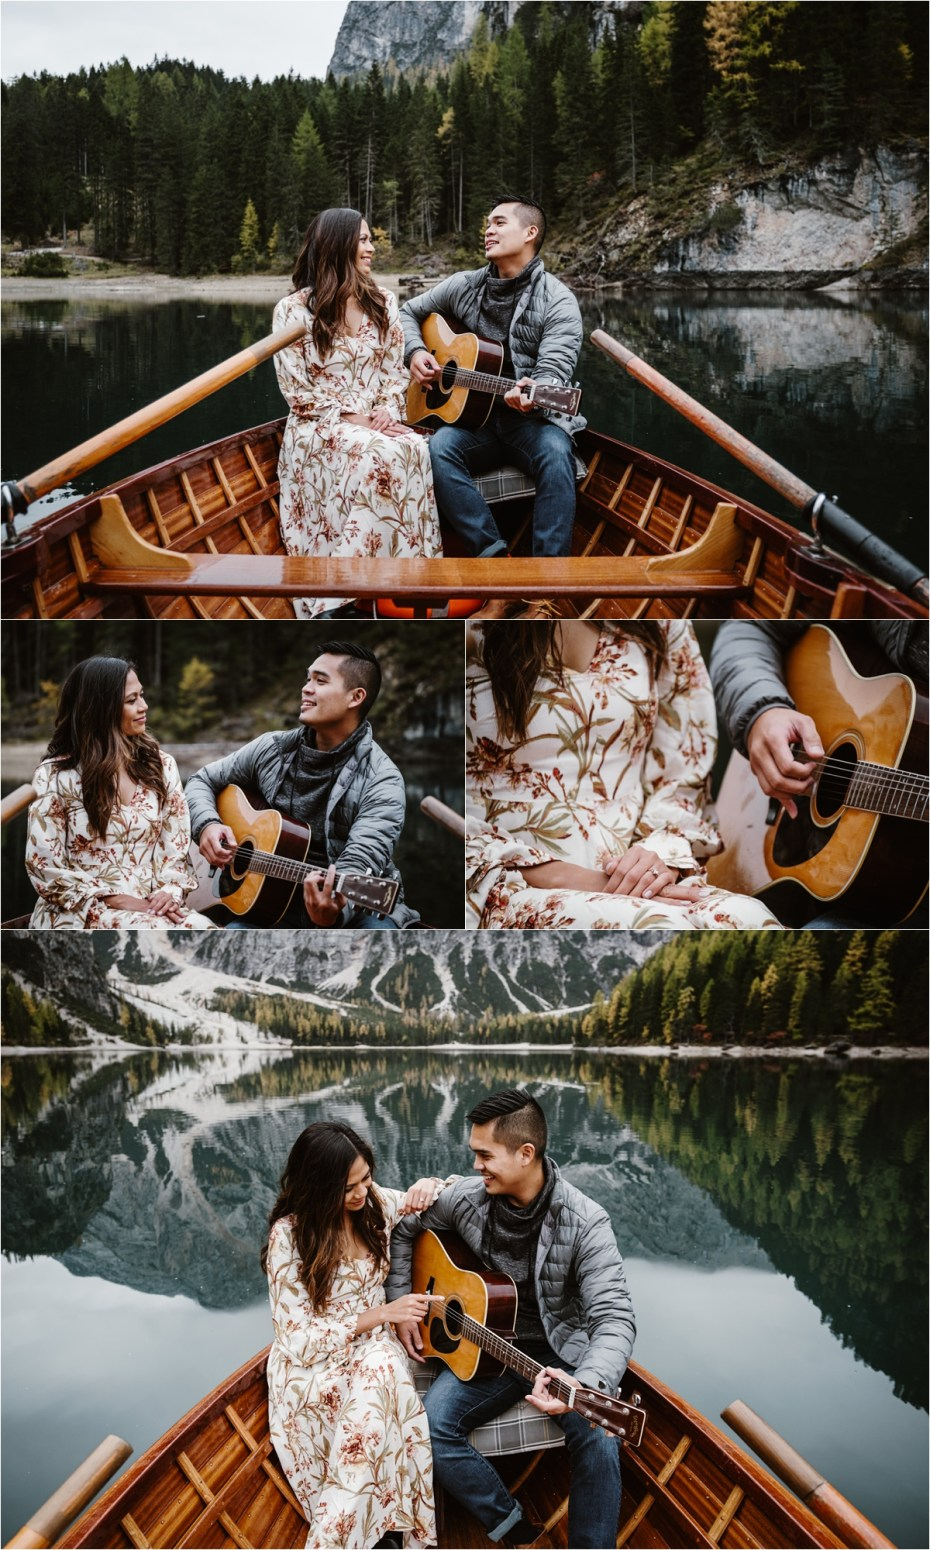 Jeremy plays his girlfriend a song in a rowing boat on Lago di Braies. Photos by Wild Connections Photography.